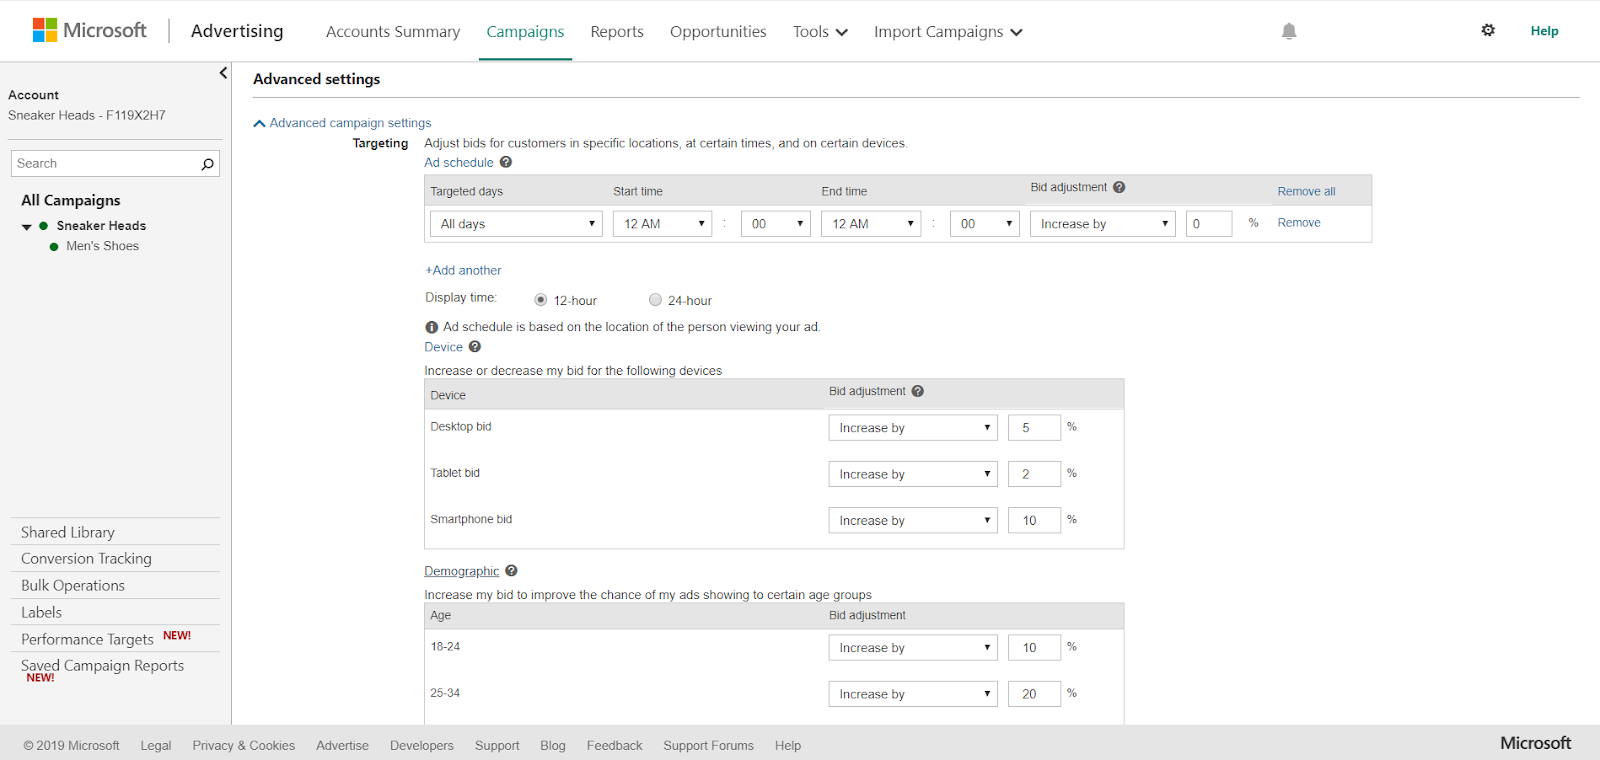 Bing Ads advanced settings to target age groups and device types.